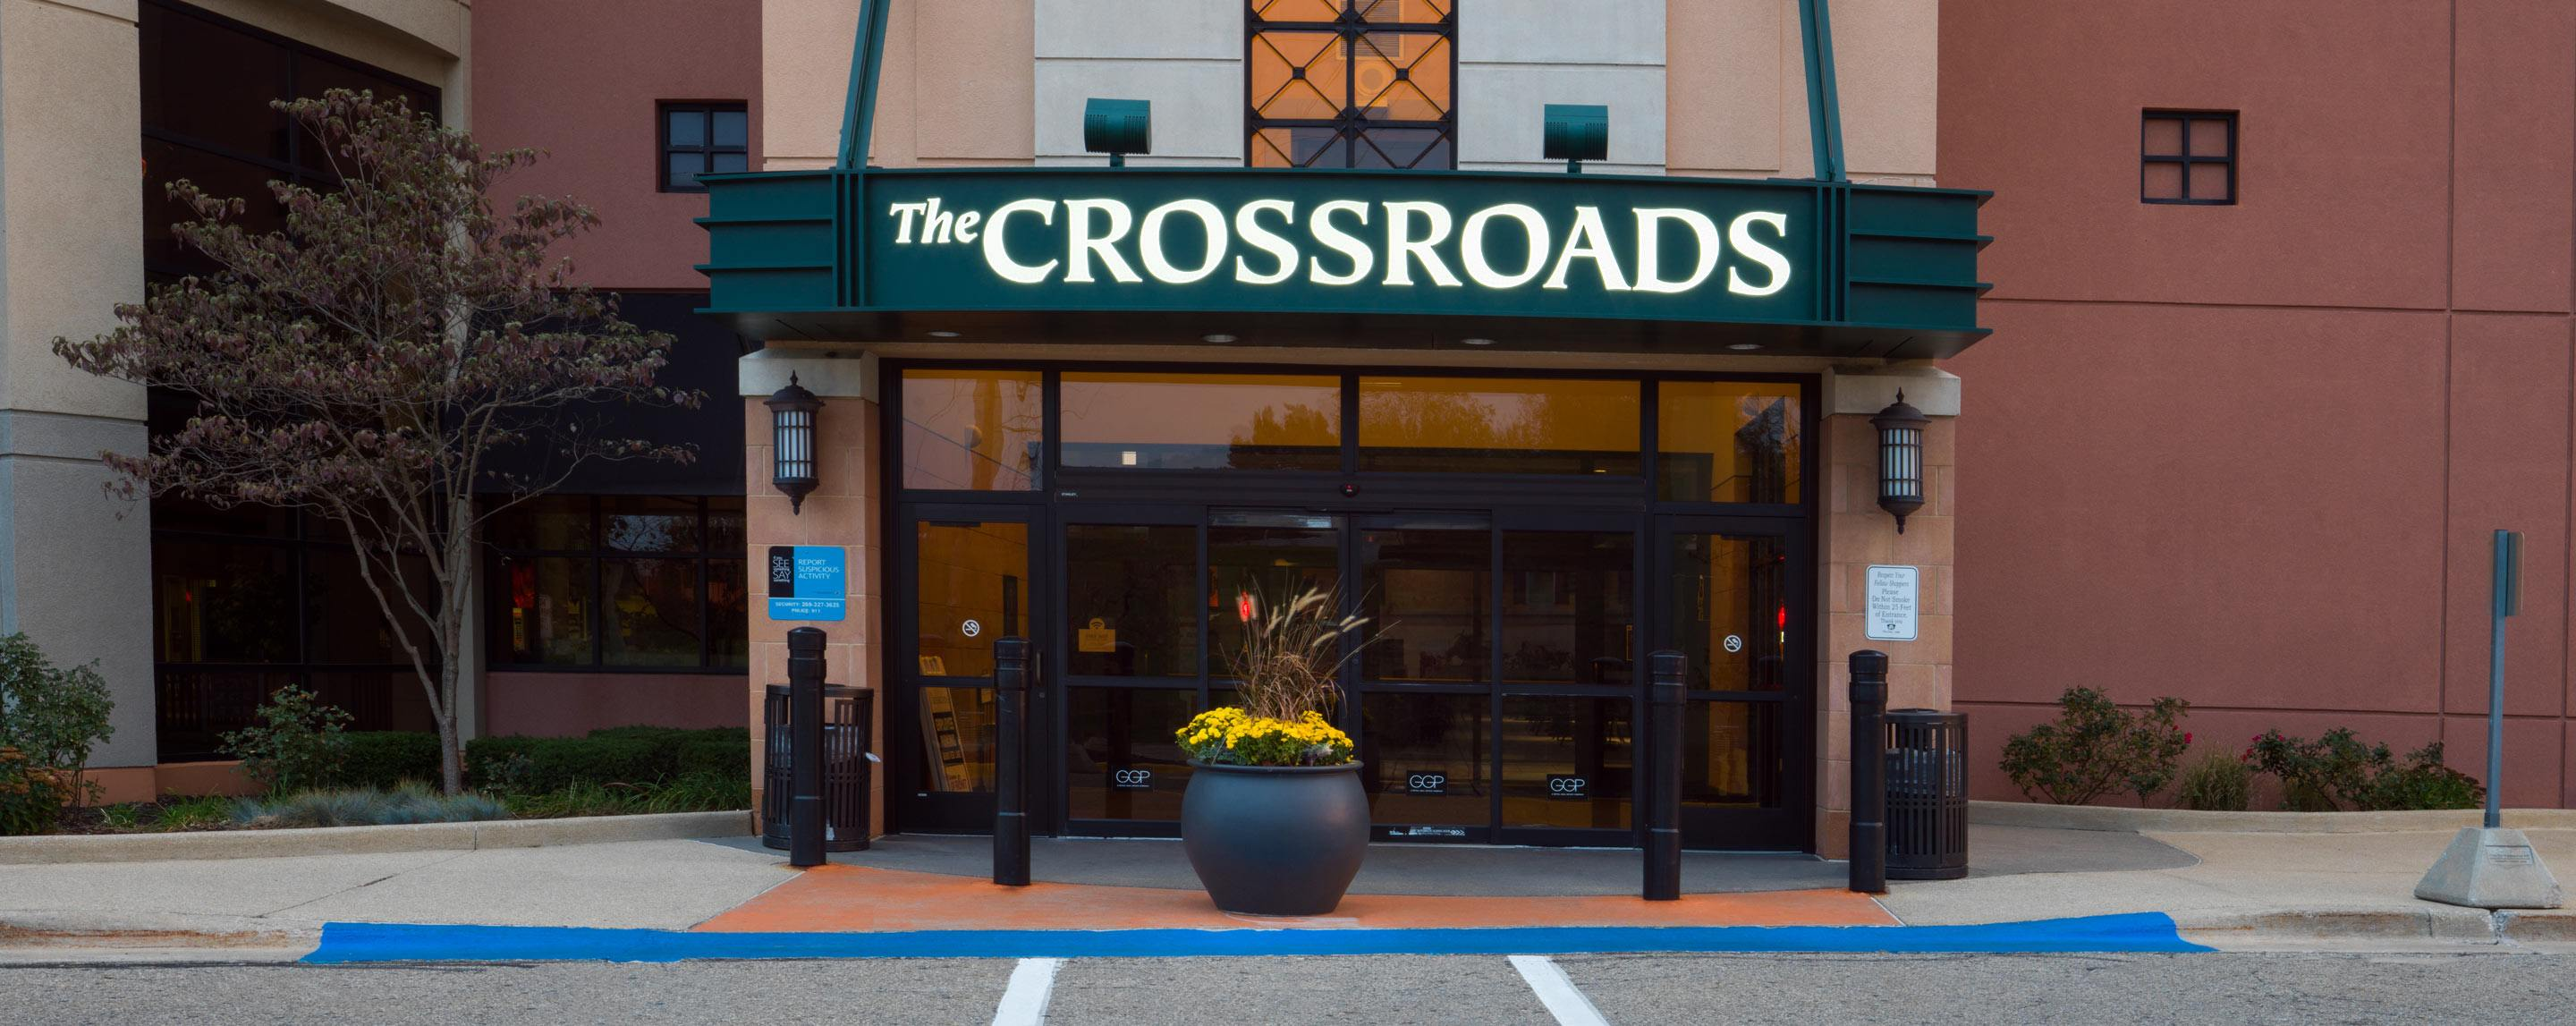 The entryway of an establishment called The Crossroads. The doorway opens onto a sidewalk.